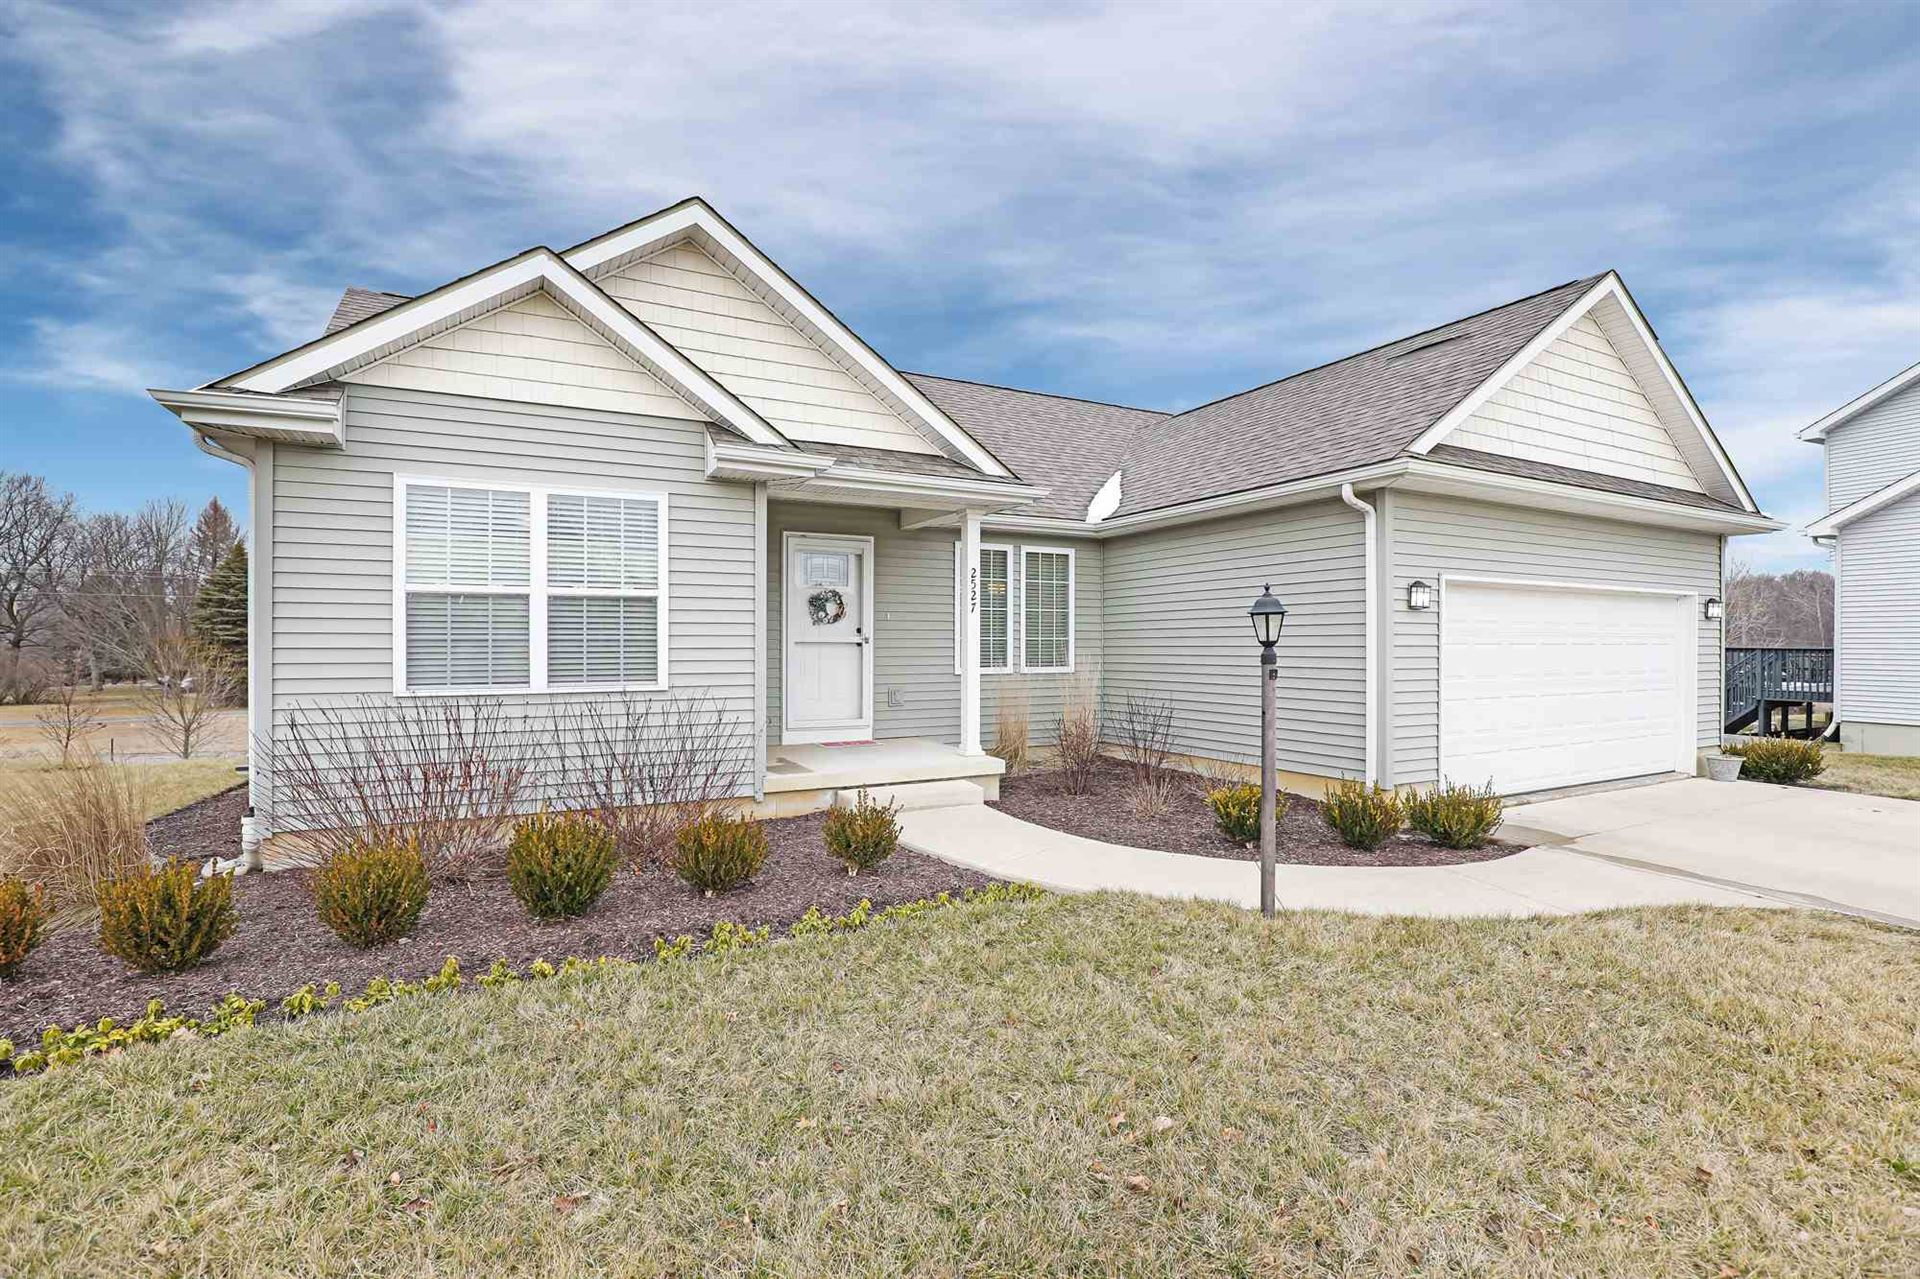 Photo of 2527 Pine Cone Lane, Warsaw, IN 46582 (MLS # 202005334)